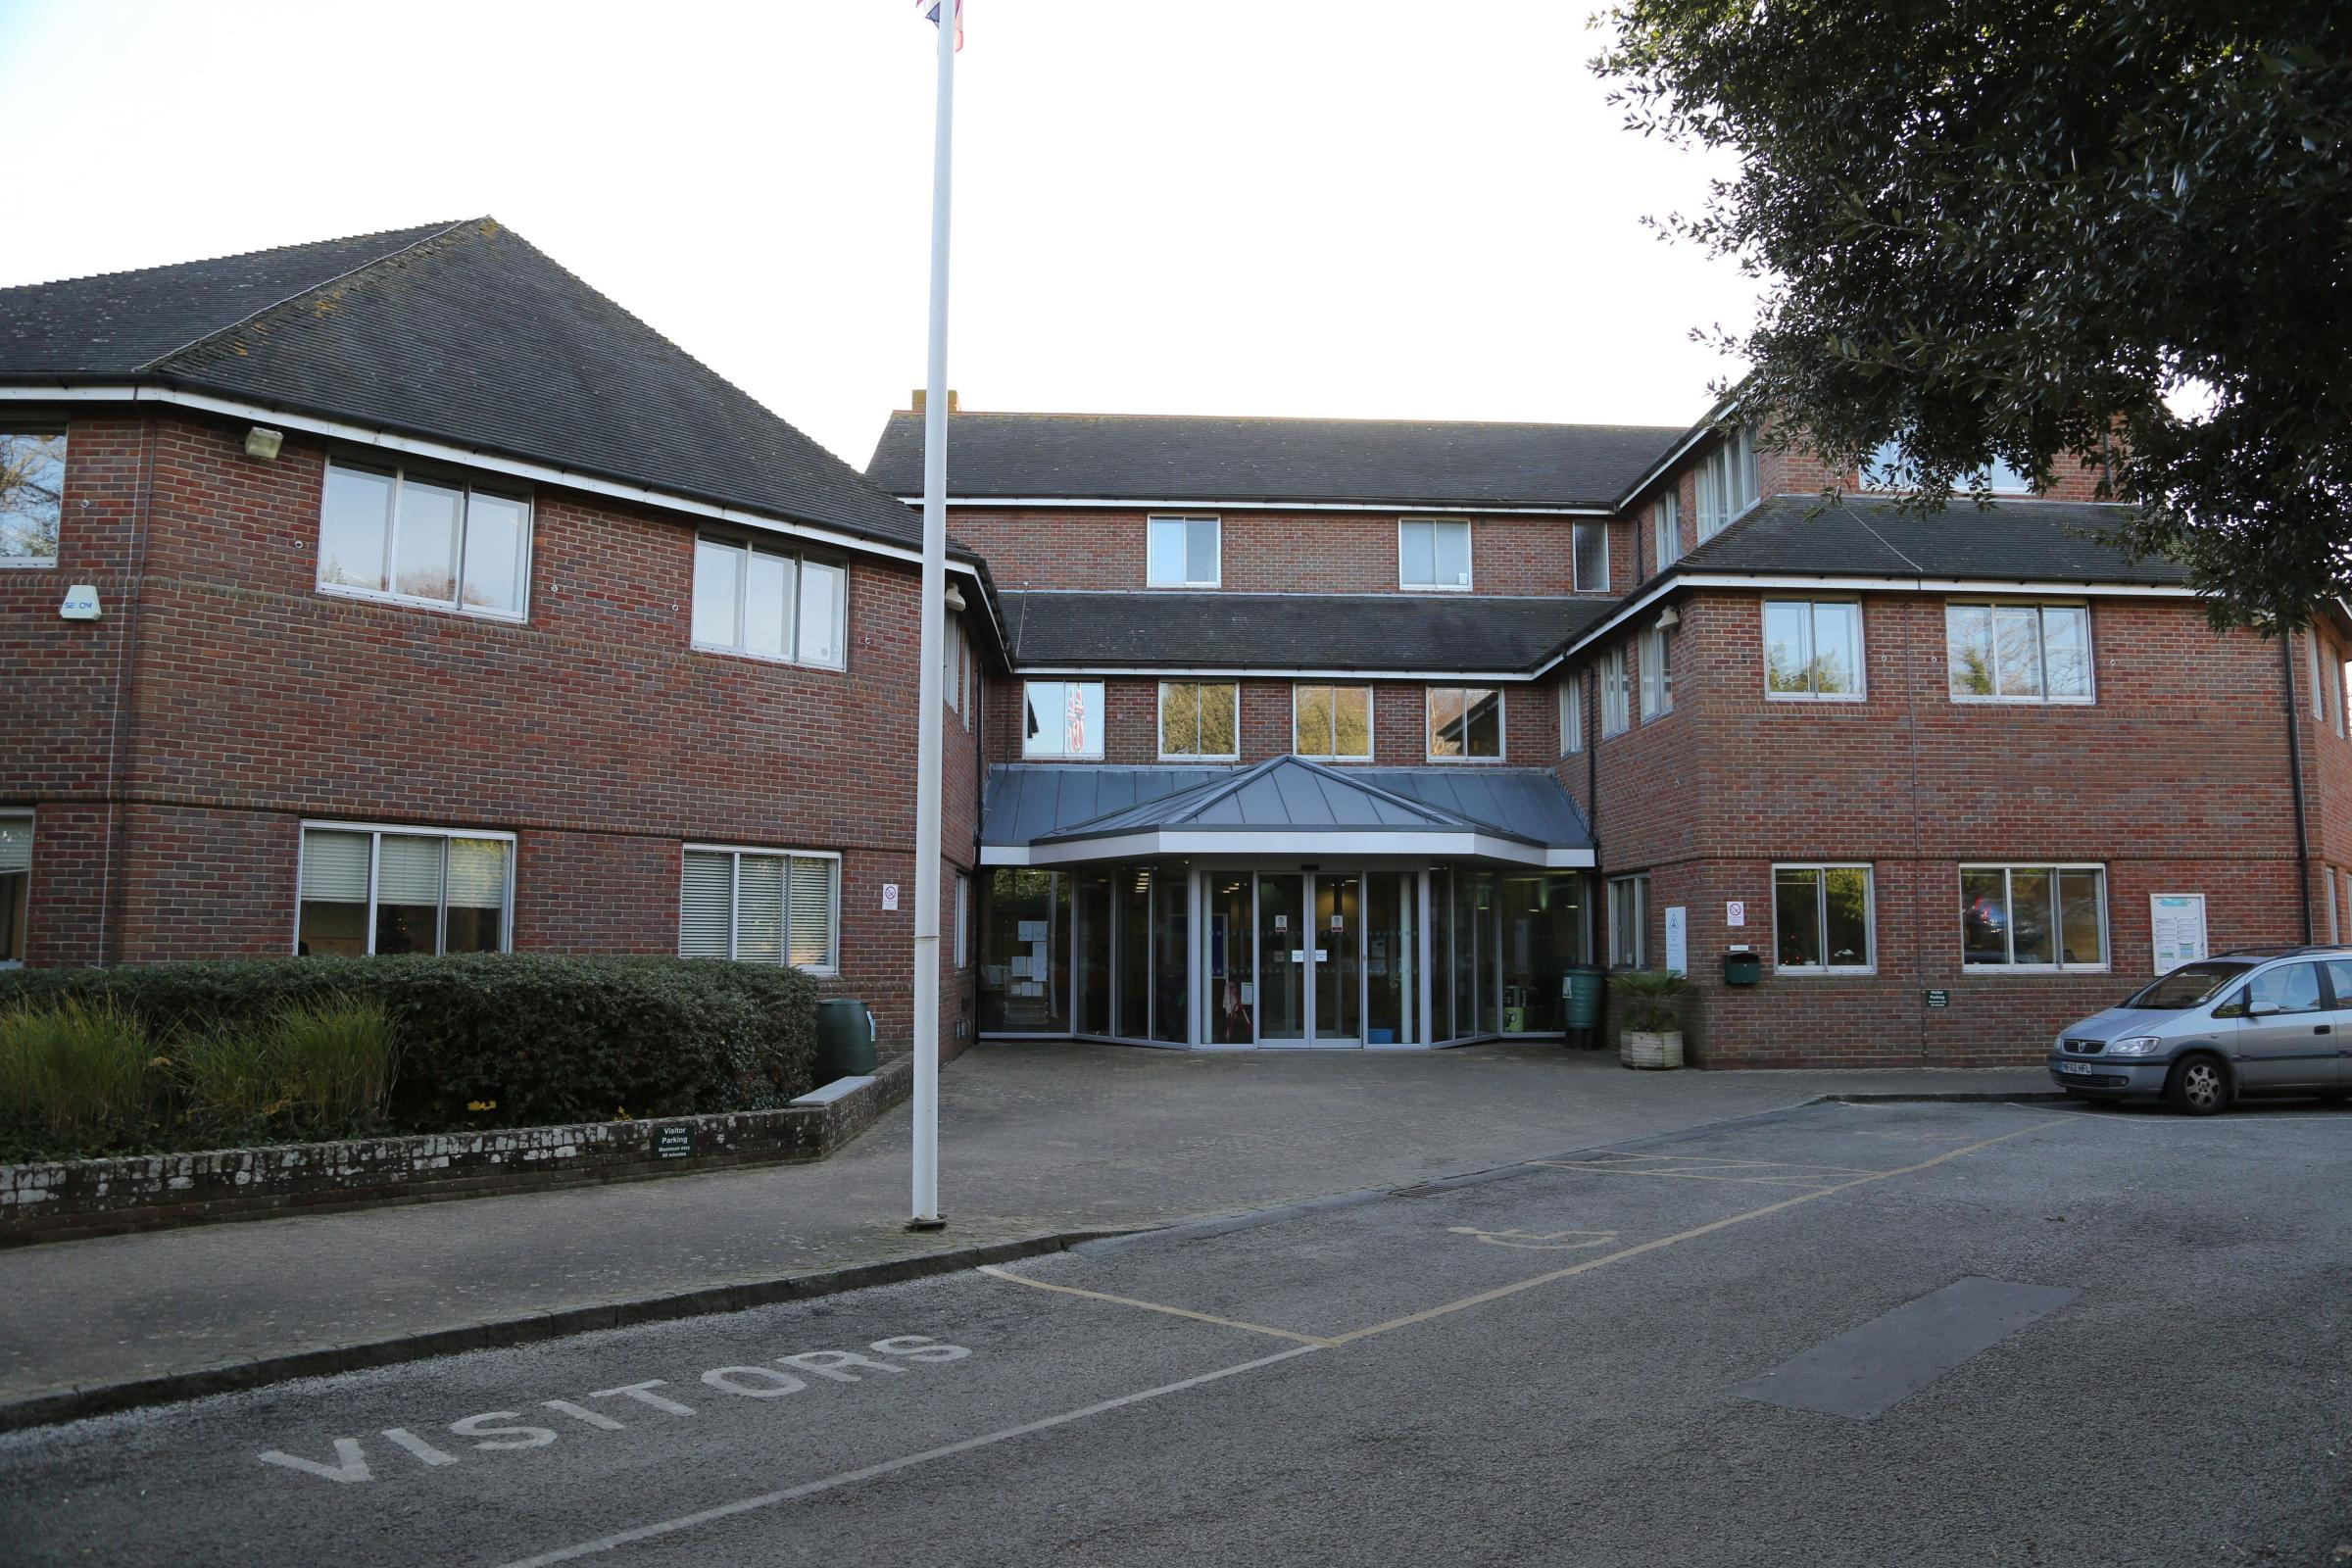 Purbeck district council head office at Westport House in Wareham.